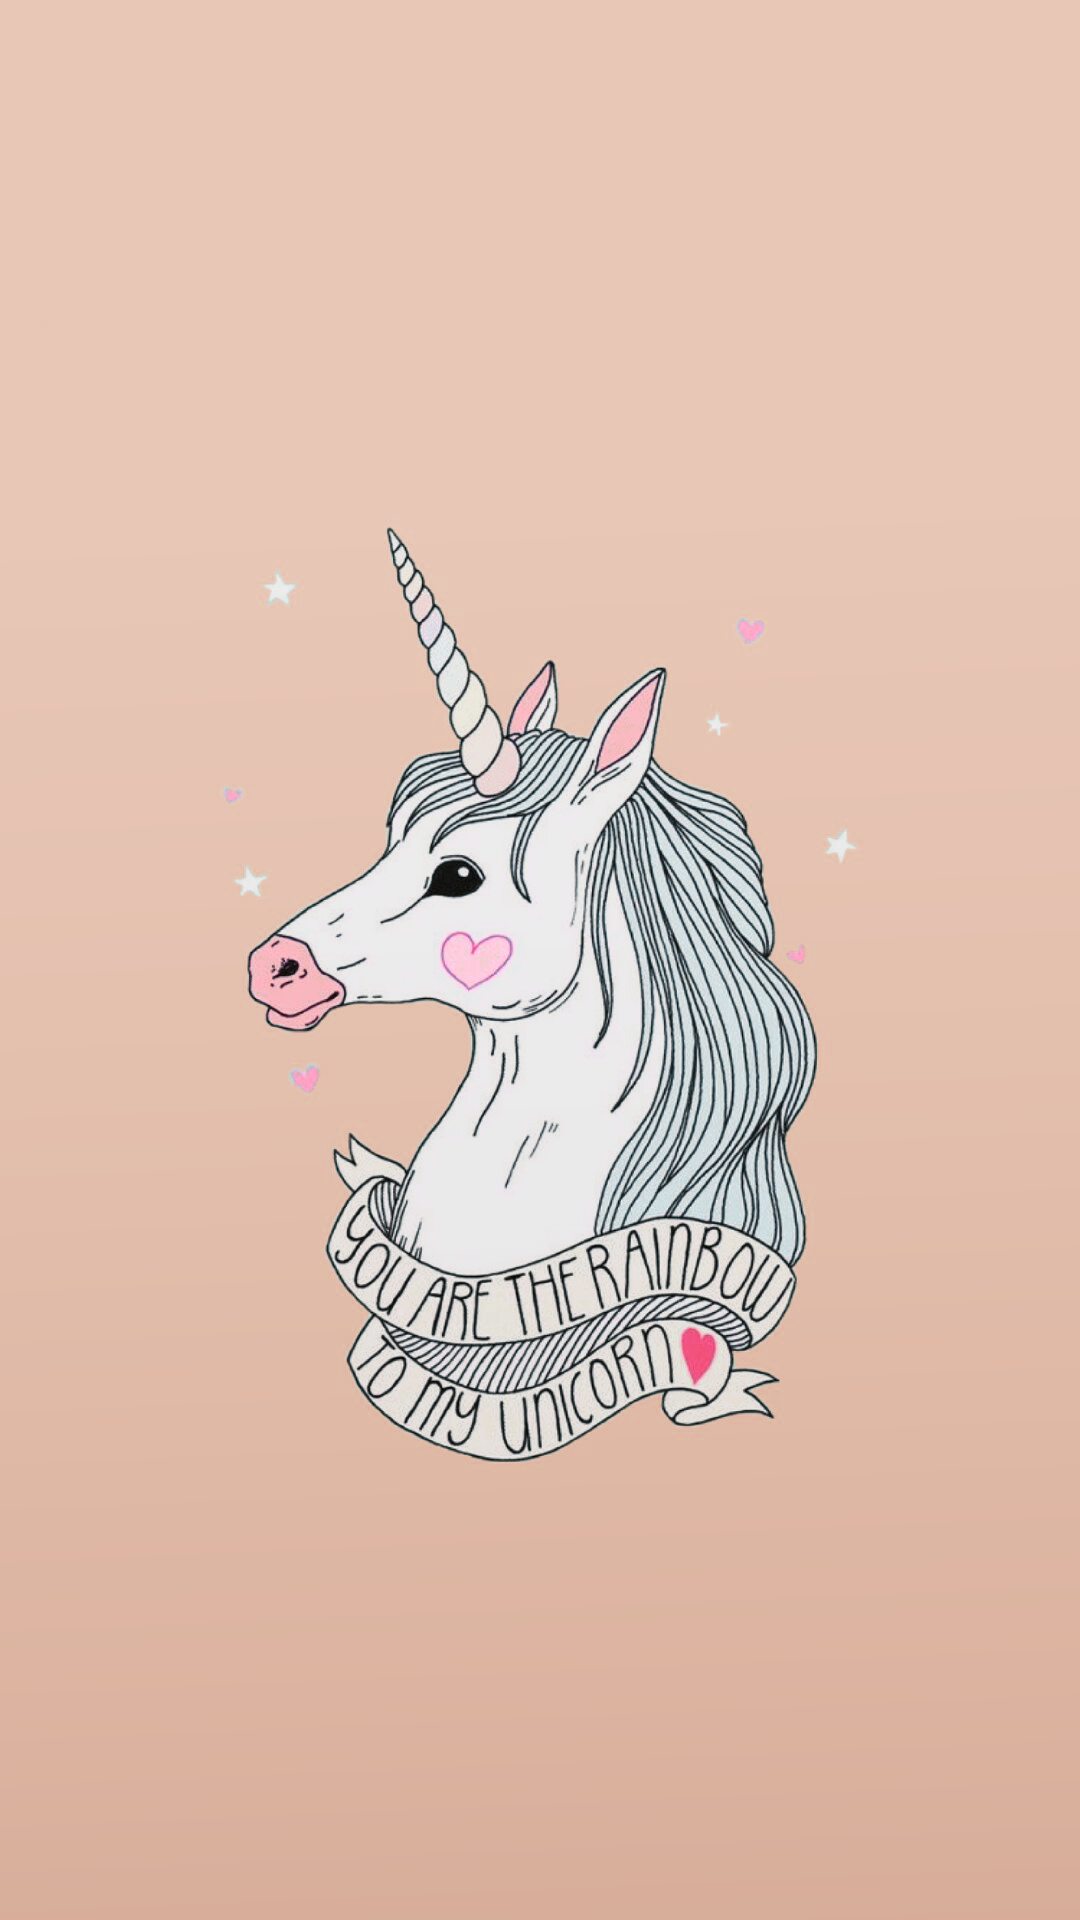 The Best Cute Girly Rose Gold Wallpaper Iphone Cute And Wallpaper Cute Girly Iphone Wall Gold Unicorn Wallpaper Unicorn Wallpaper Cute Cute Emoji Wallpaper